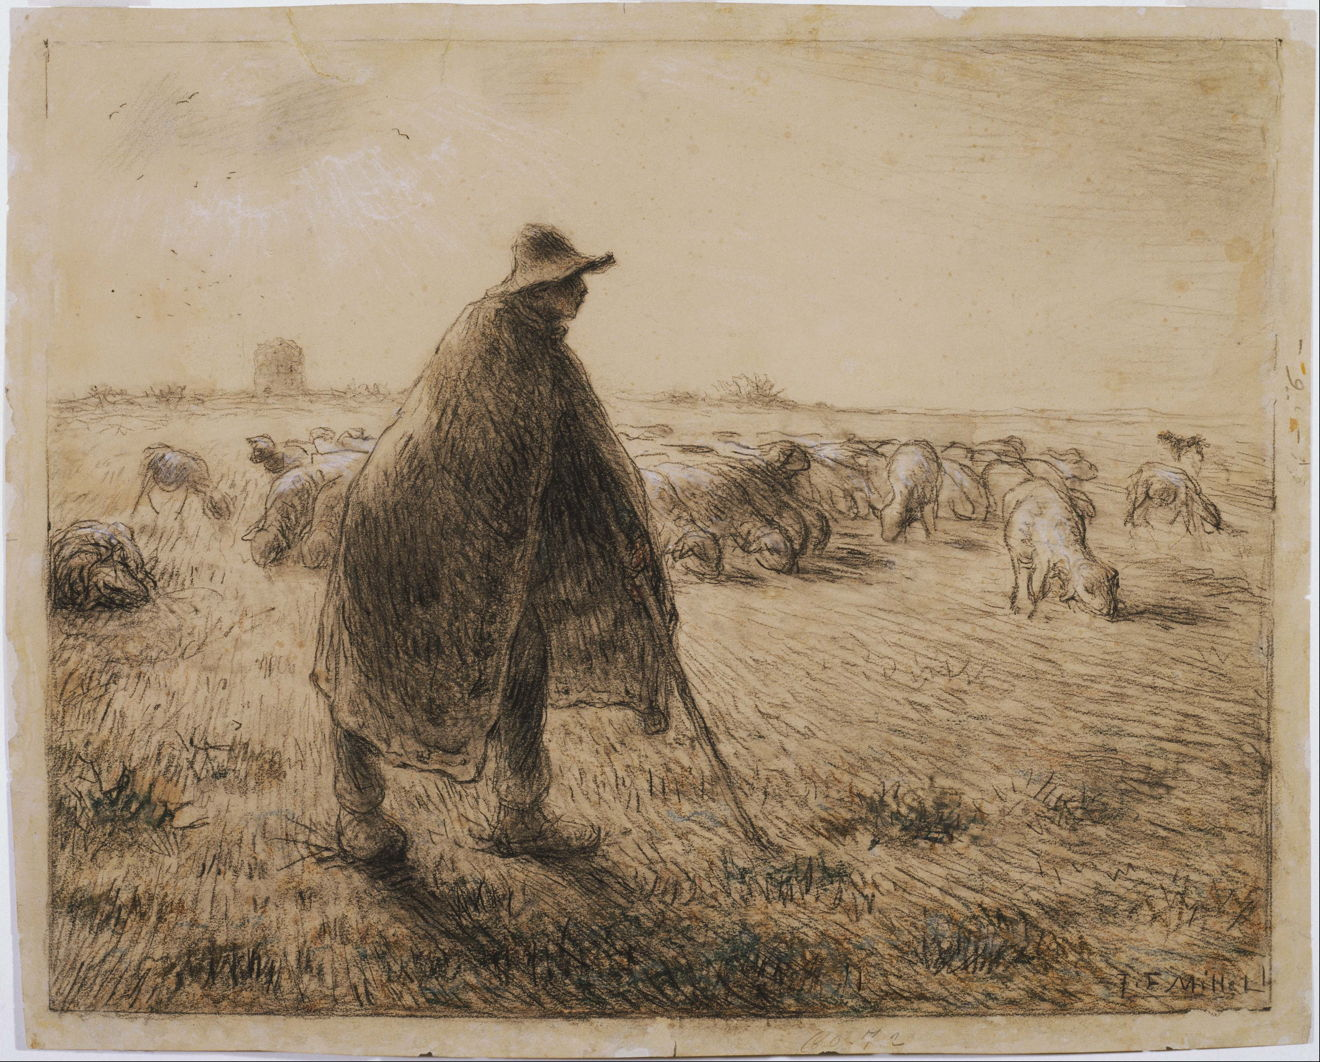 the life and works of jean francois millet Julia cartwright's recent work, jean francois millet: his life and letters, is founded on sensier's life, yet rounds out the study of.